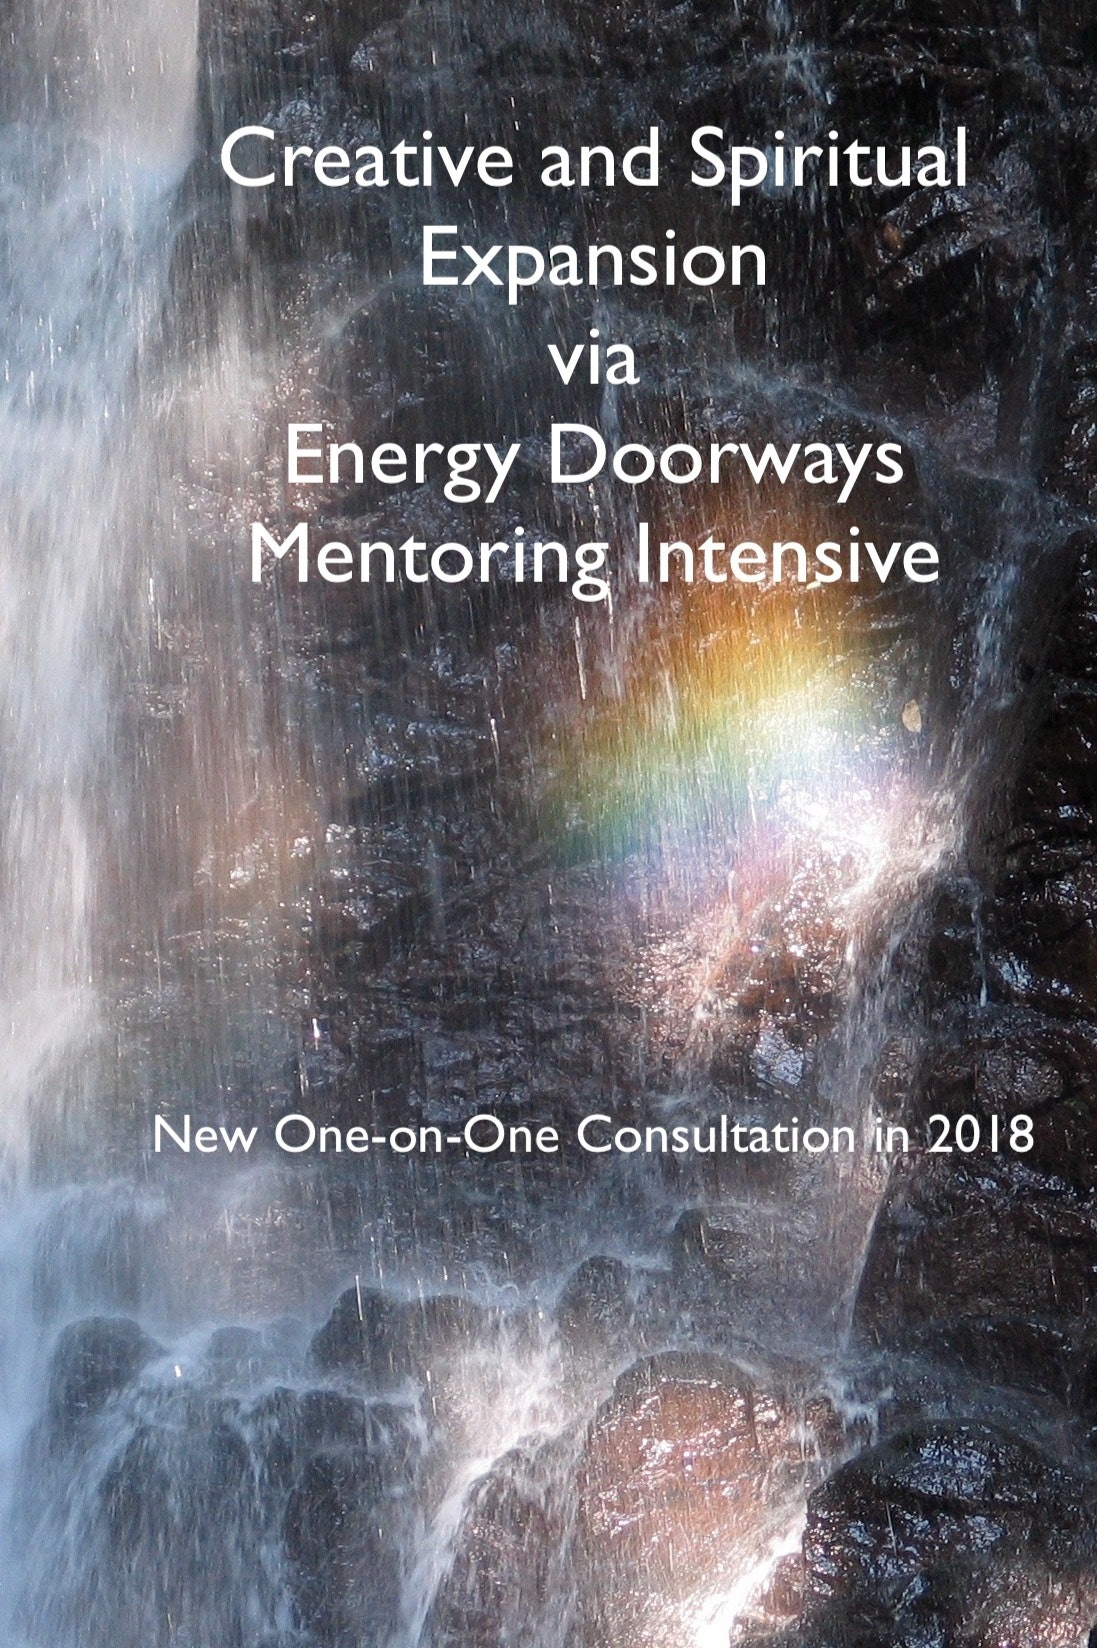 ENERGY DOORWAYS MENTORING INTENSIVE